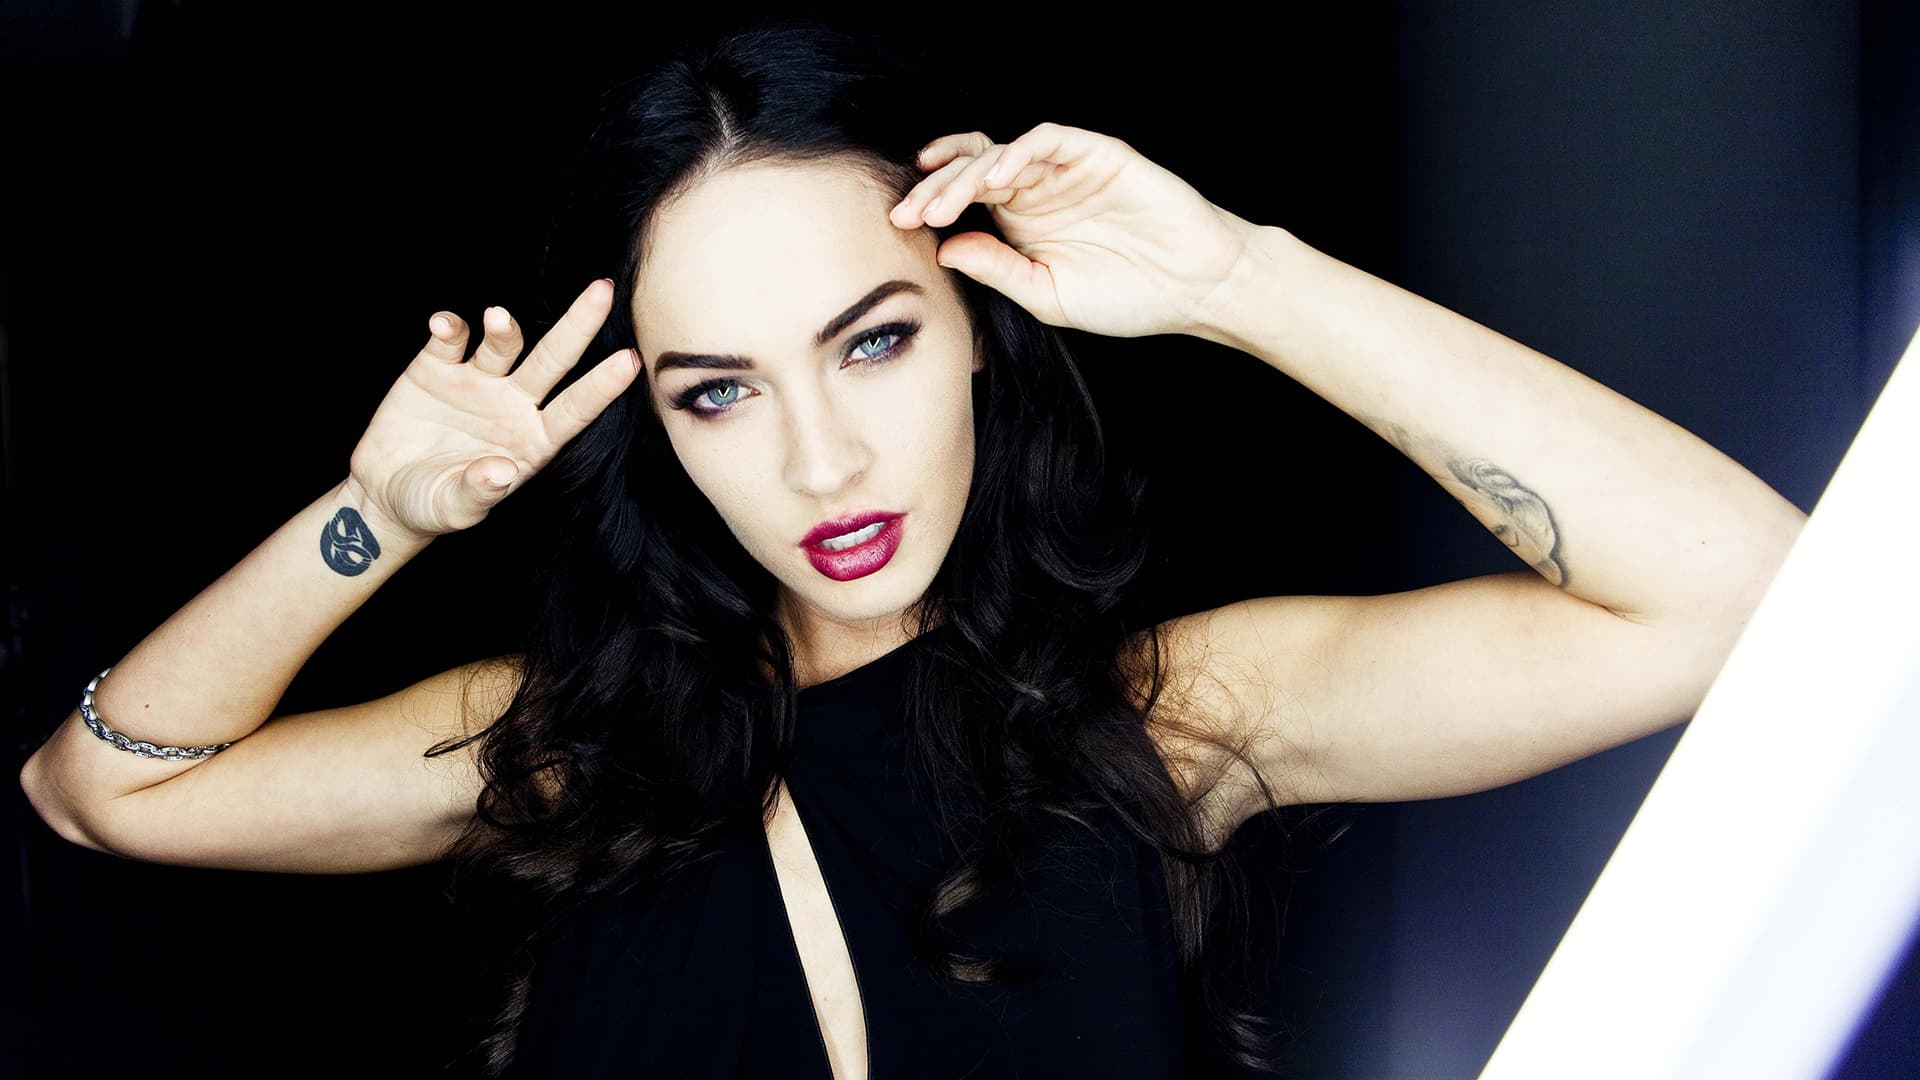 40 Megan Fox Wallpapers High Quality Download